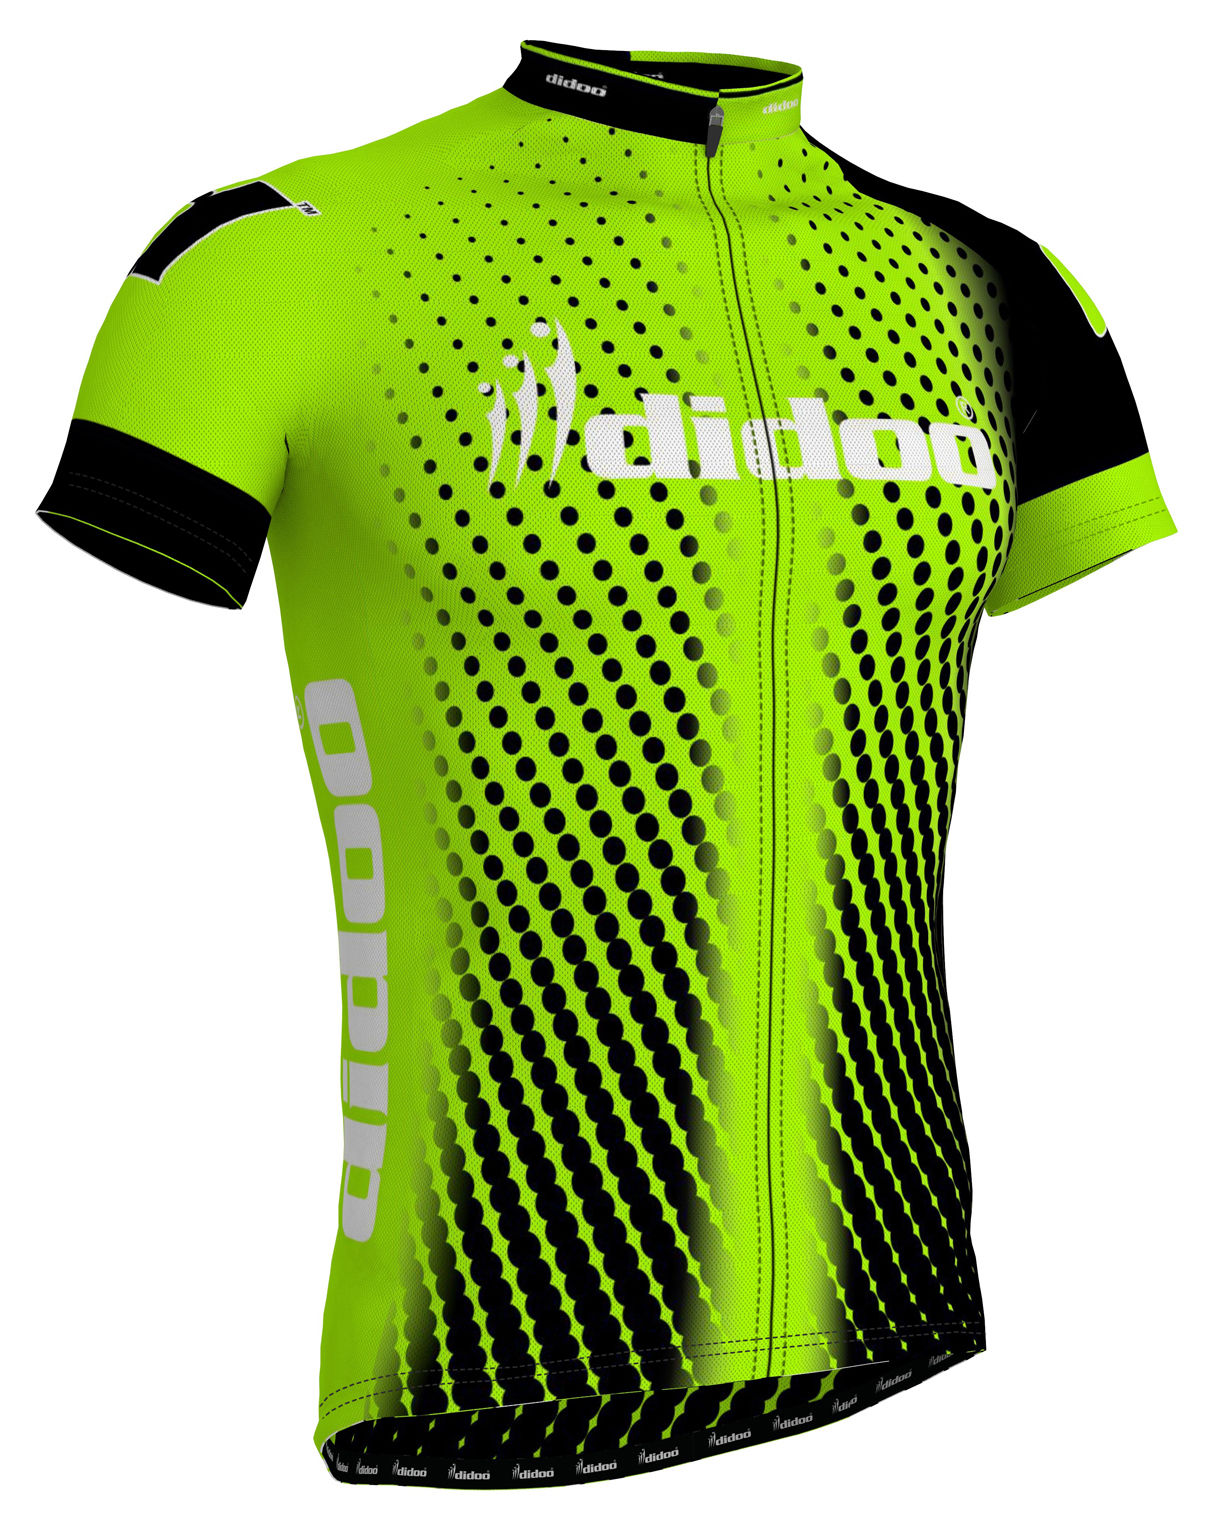 DiDOO Men's Classic Short Sleeve Cycling Jersey